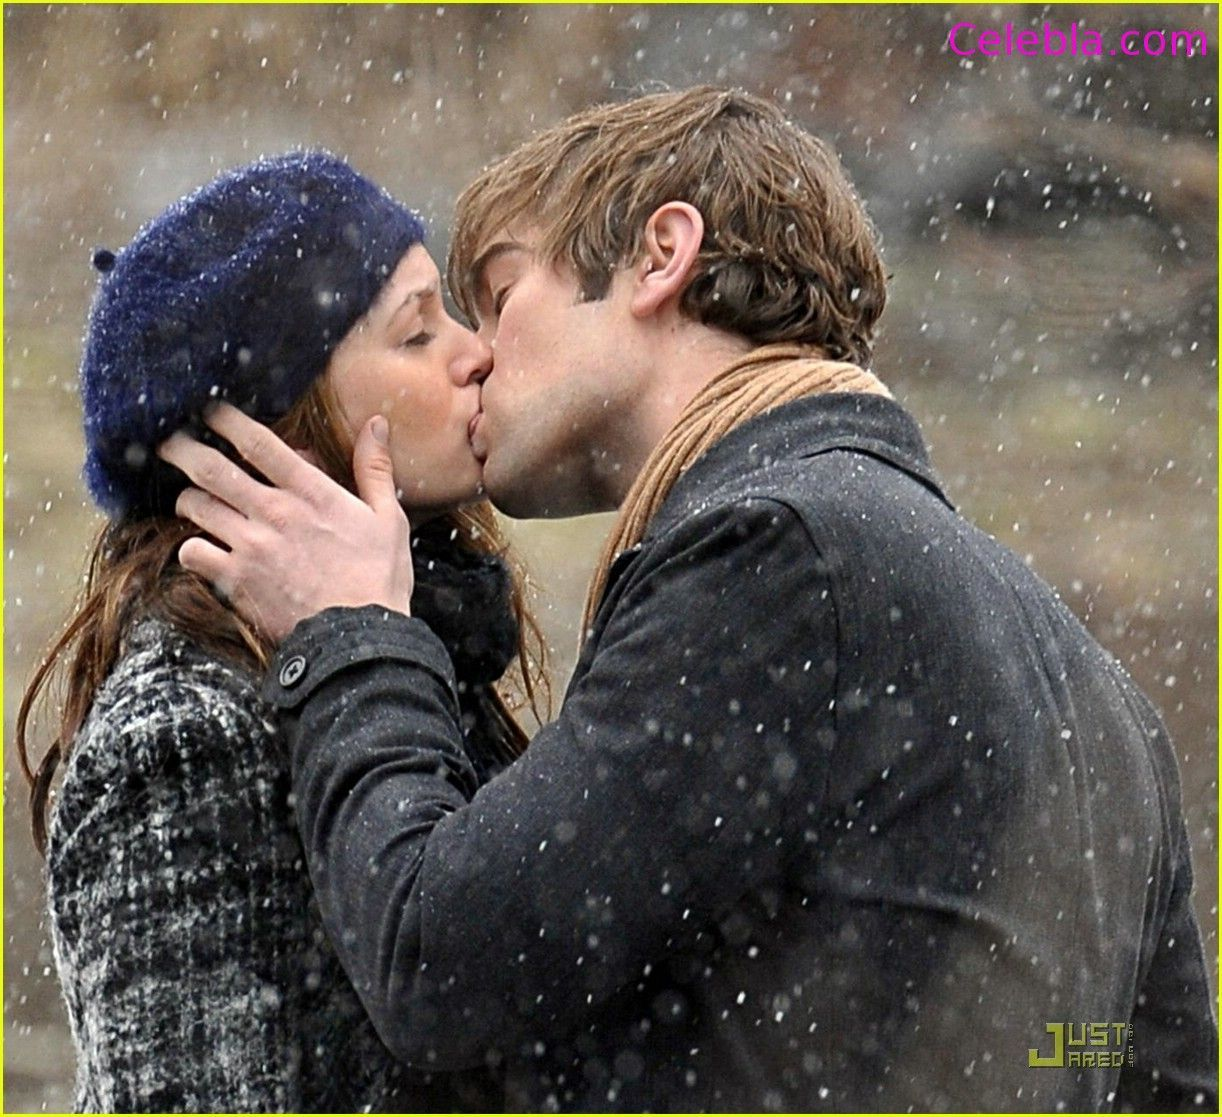 Romantic Couple Kissing Full View And Download Romantic Couple